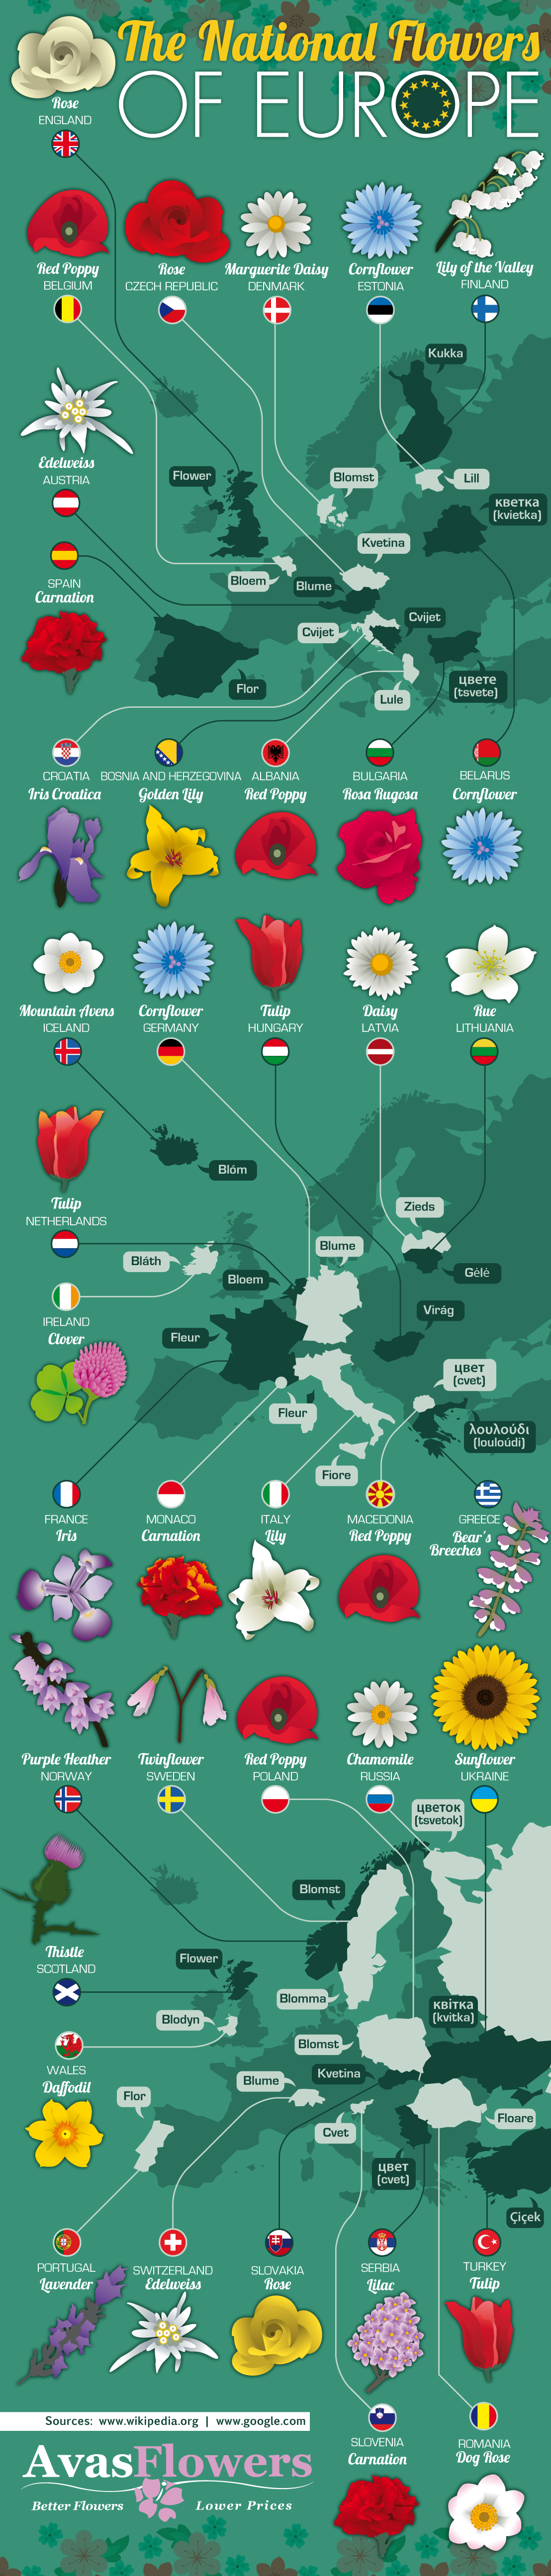 The National Flowers of Of Europe